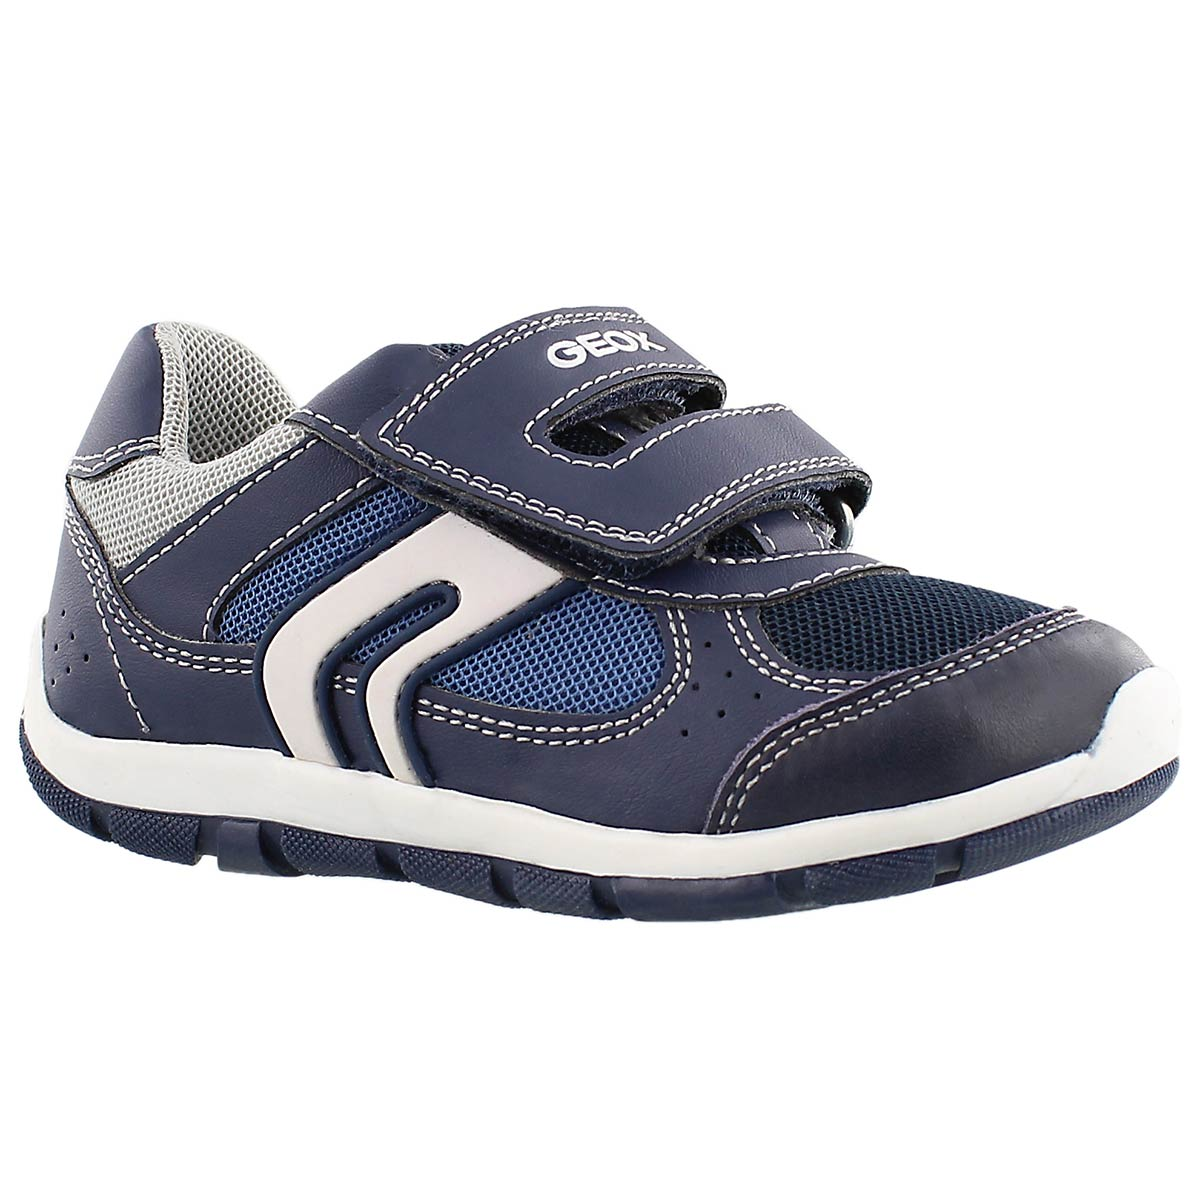 Infants' SHAAX navy 2 double strap sneakers